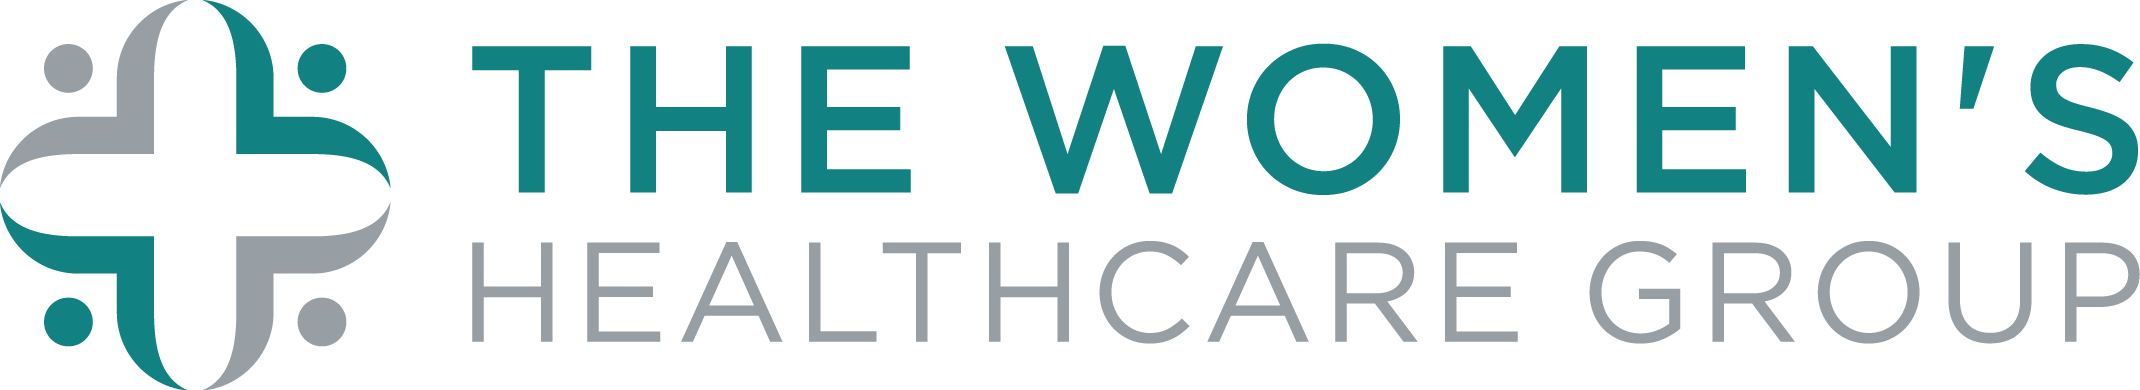 Women's Healthcare Group